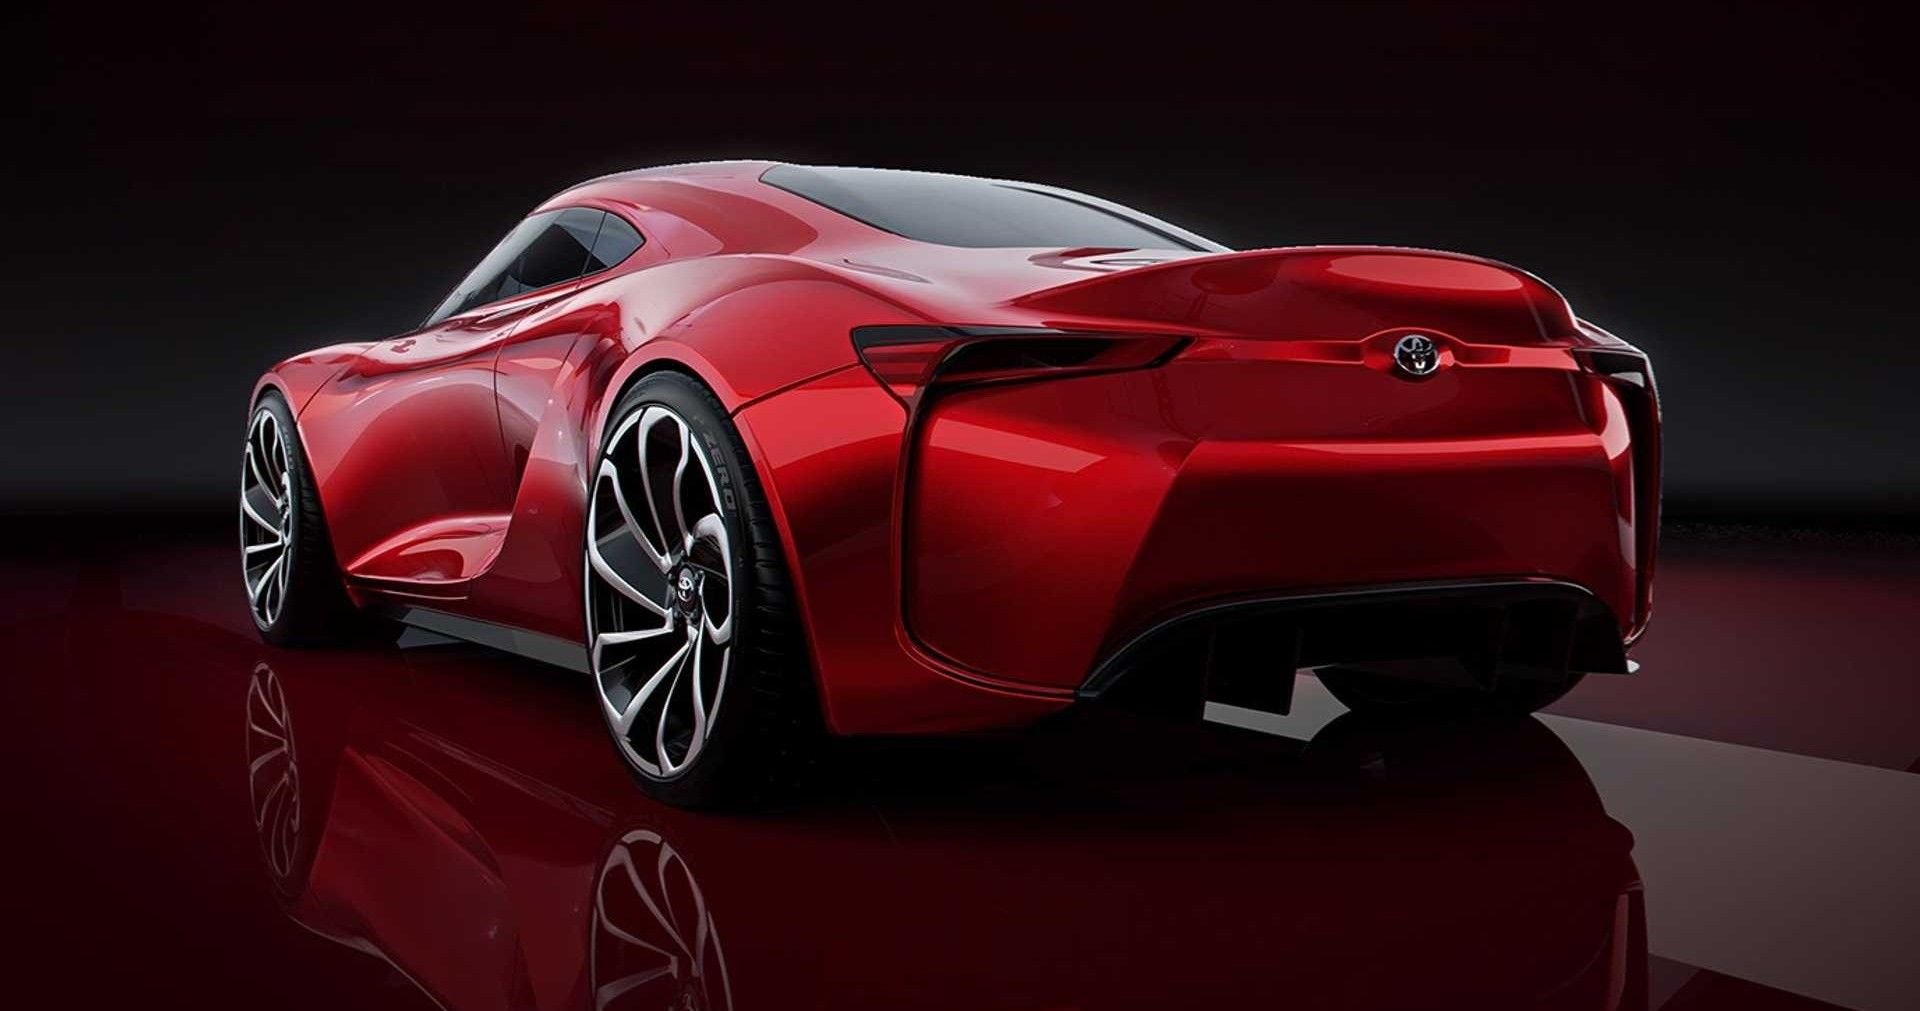 2024 Toyota MR2: What The Production Model Might Look Like